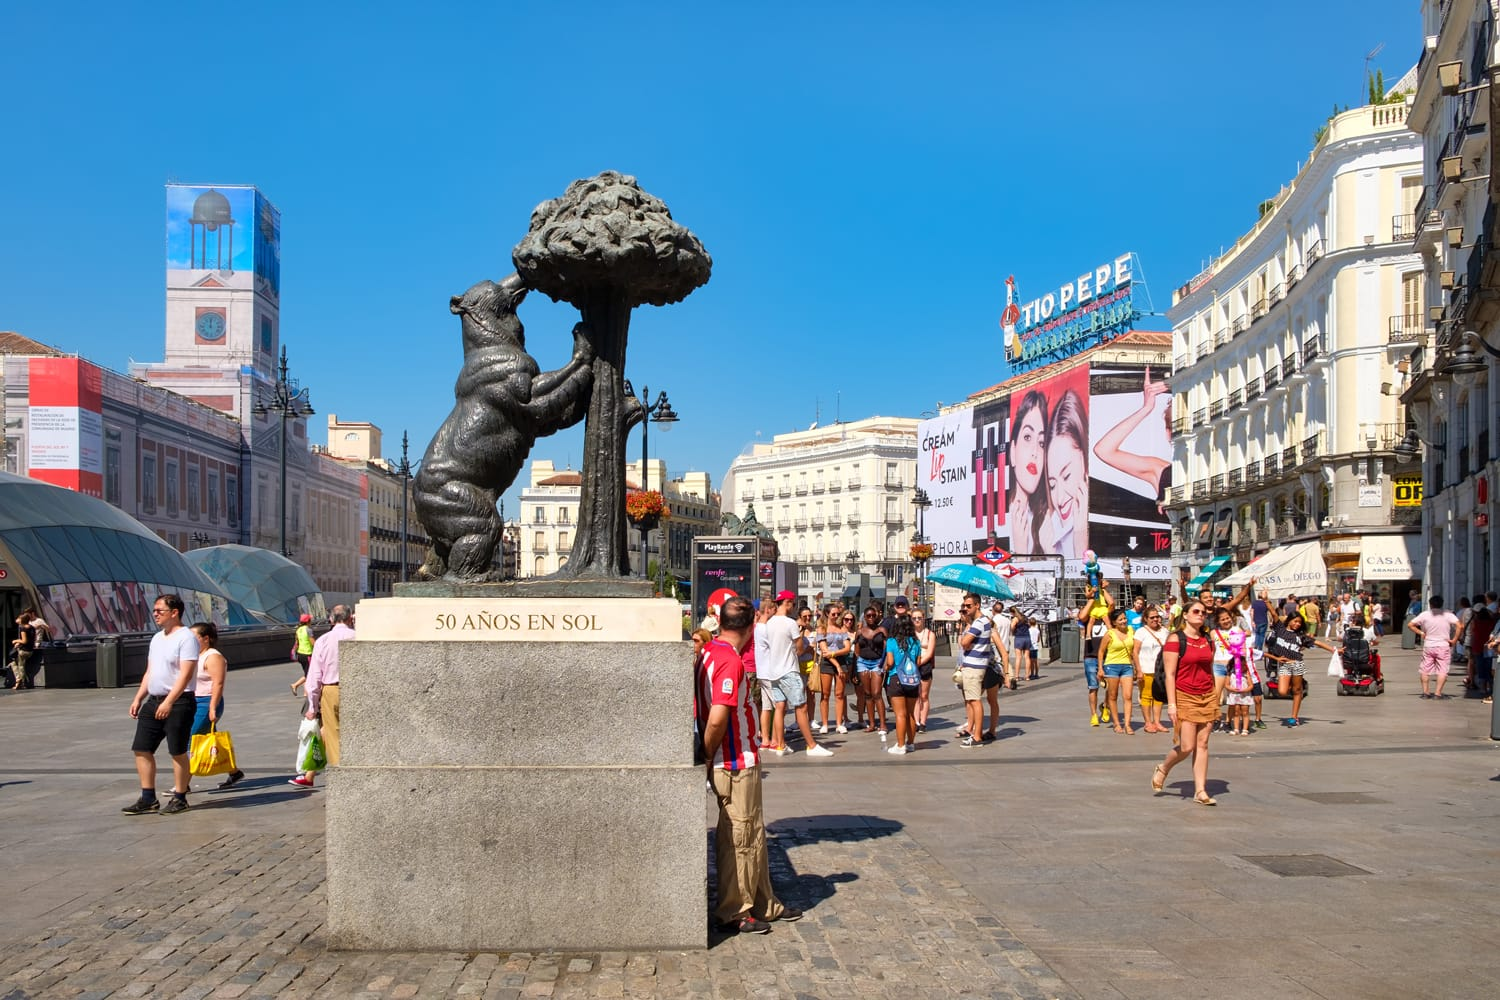 Puerta del Sol, one of the busiest places in Madrid with the statue of a bear and a madrone tree, the symbol of the city